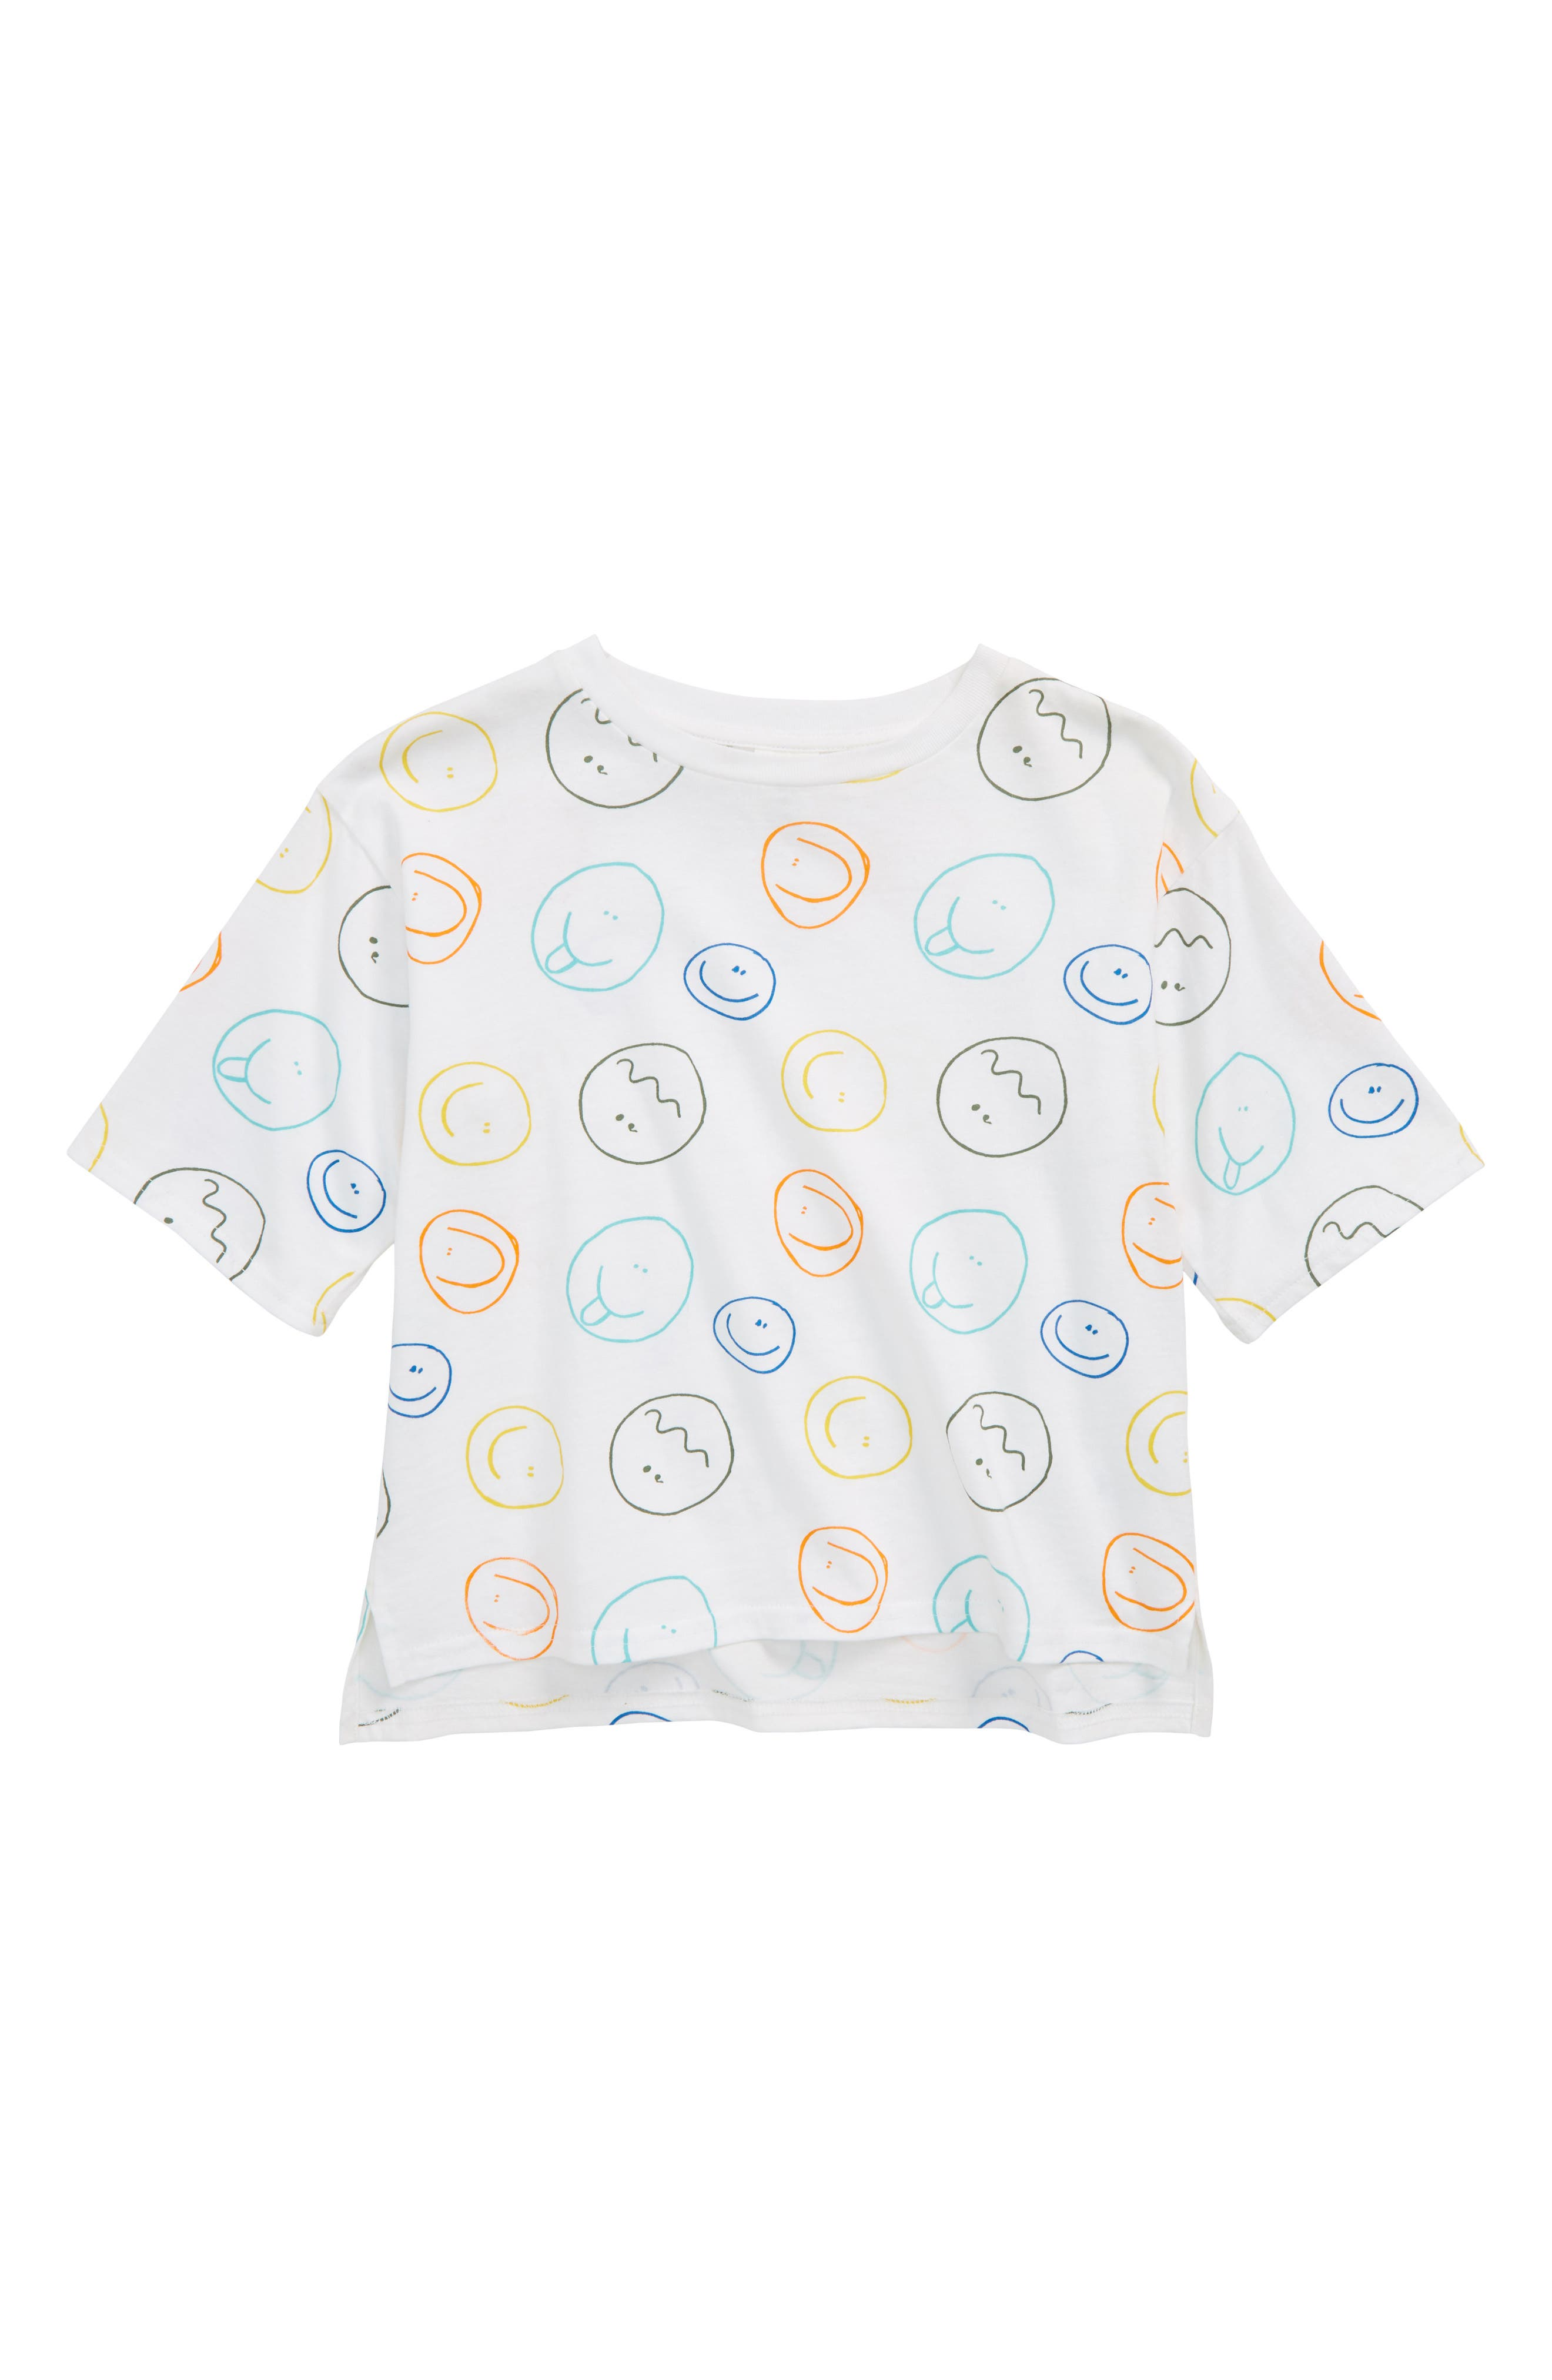 Graphic T-Shirt,                             Main thumbnail 1, color,                             WHITE- MULTI SMILEY FACES